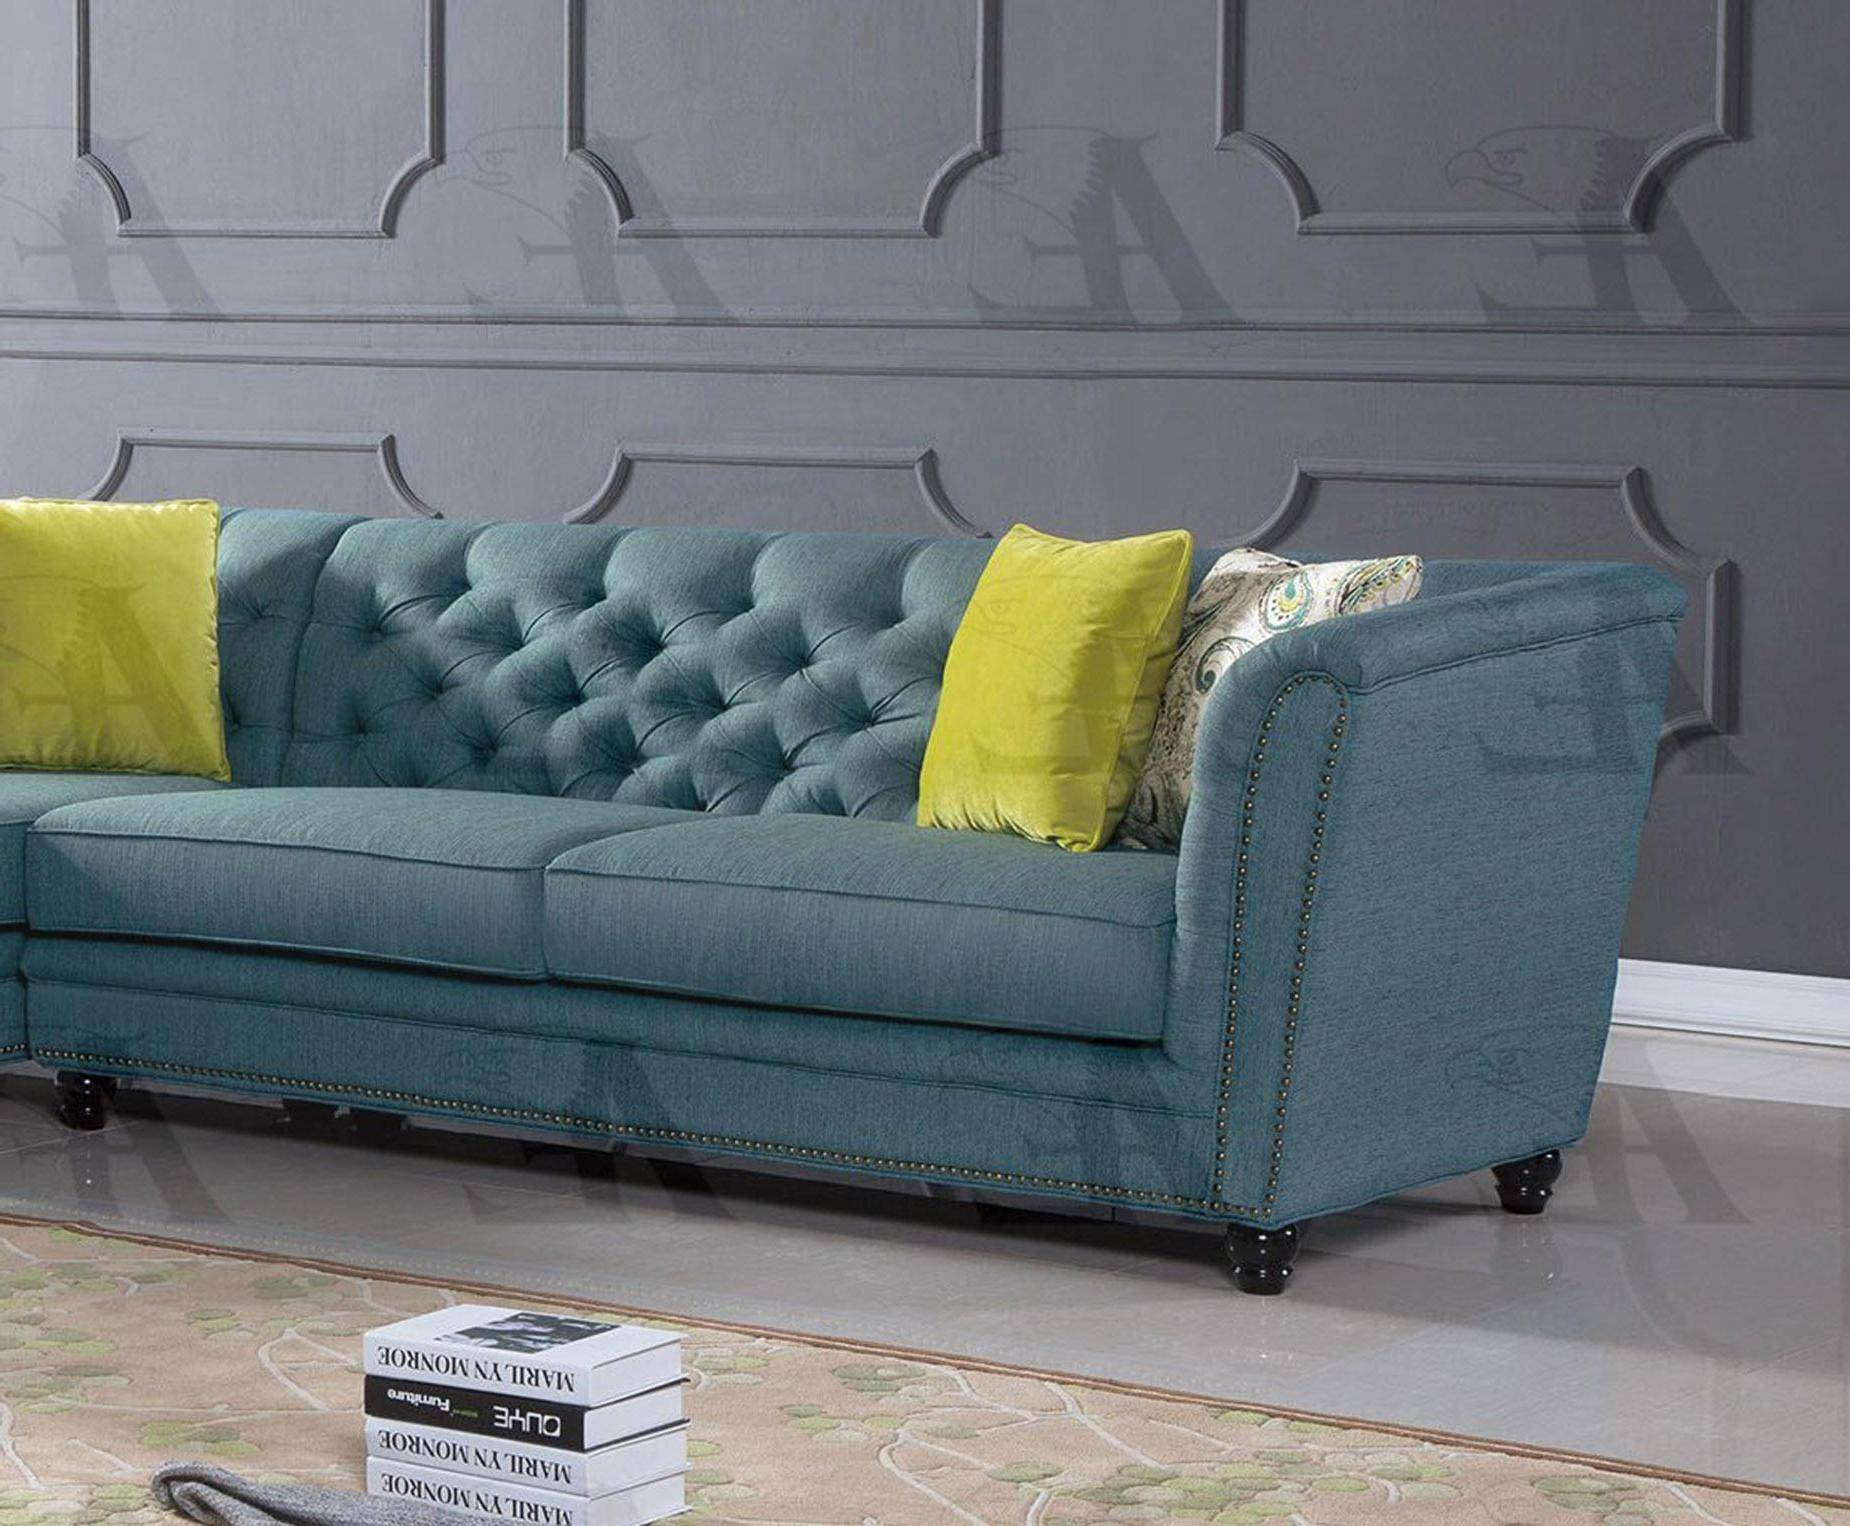 Cool American Eagle Furniture Ae L2219 Blue Fabric Tufted Sectional Sofa Living Room Set Right Hand Chase 2Pcs Download Free Architecture Designs Scobabritishbridgeorg